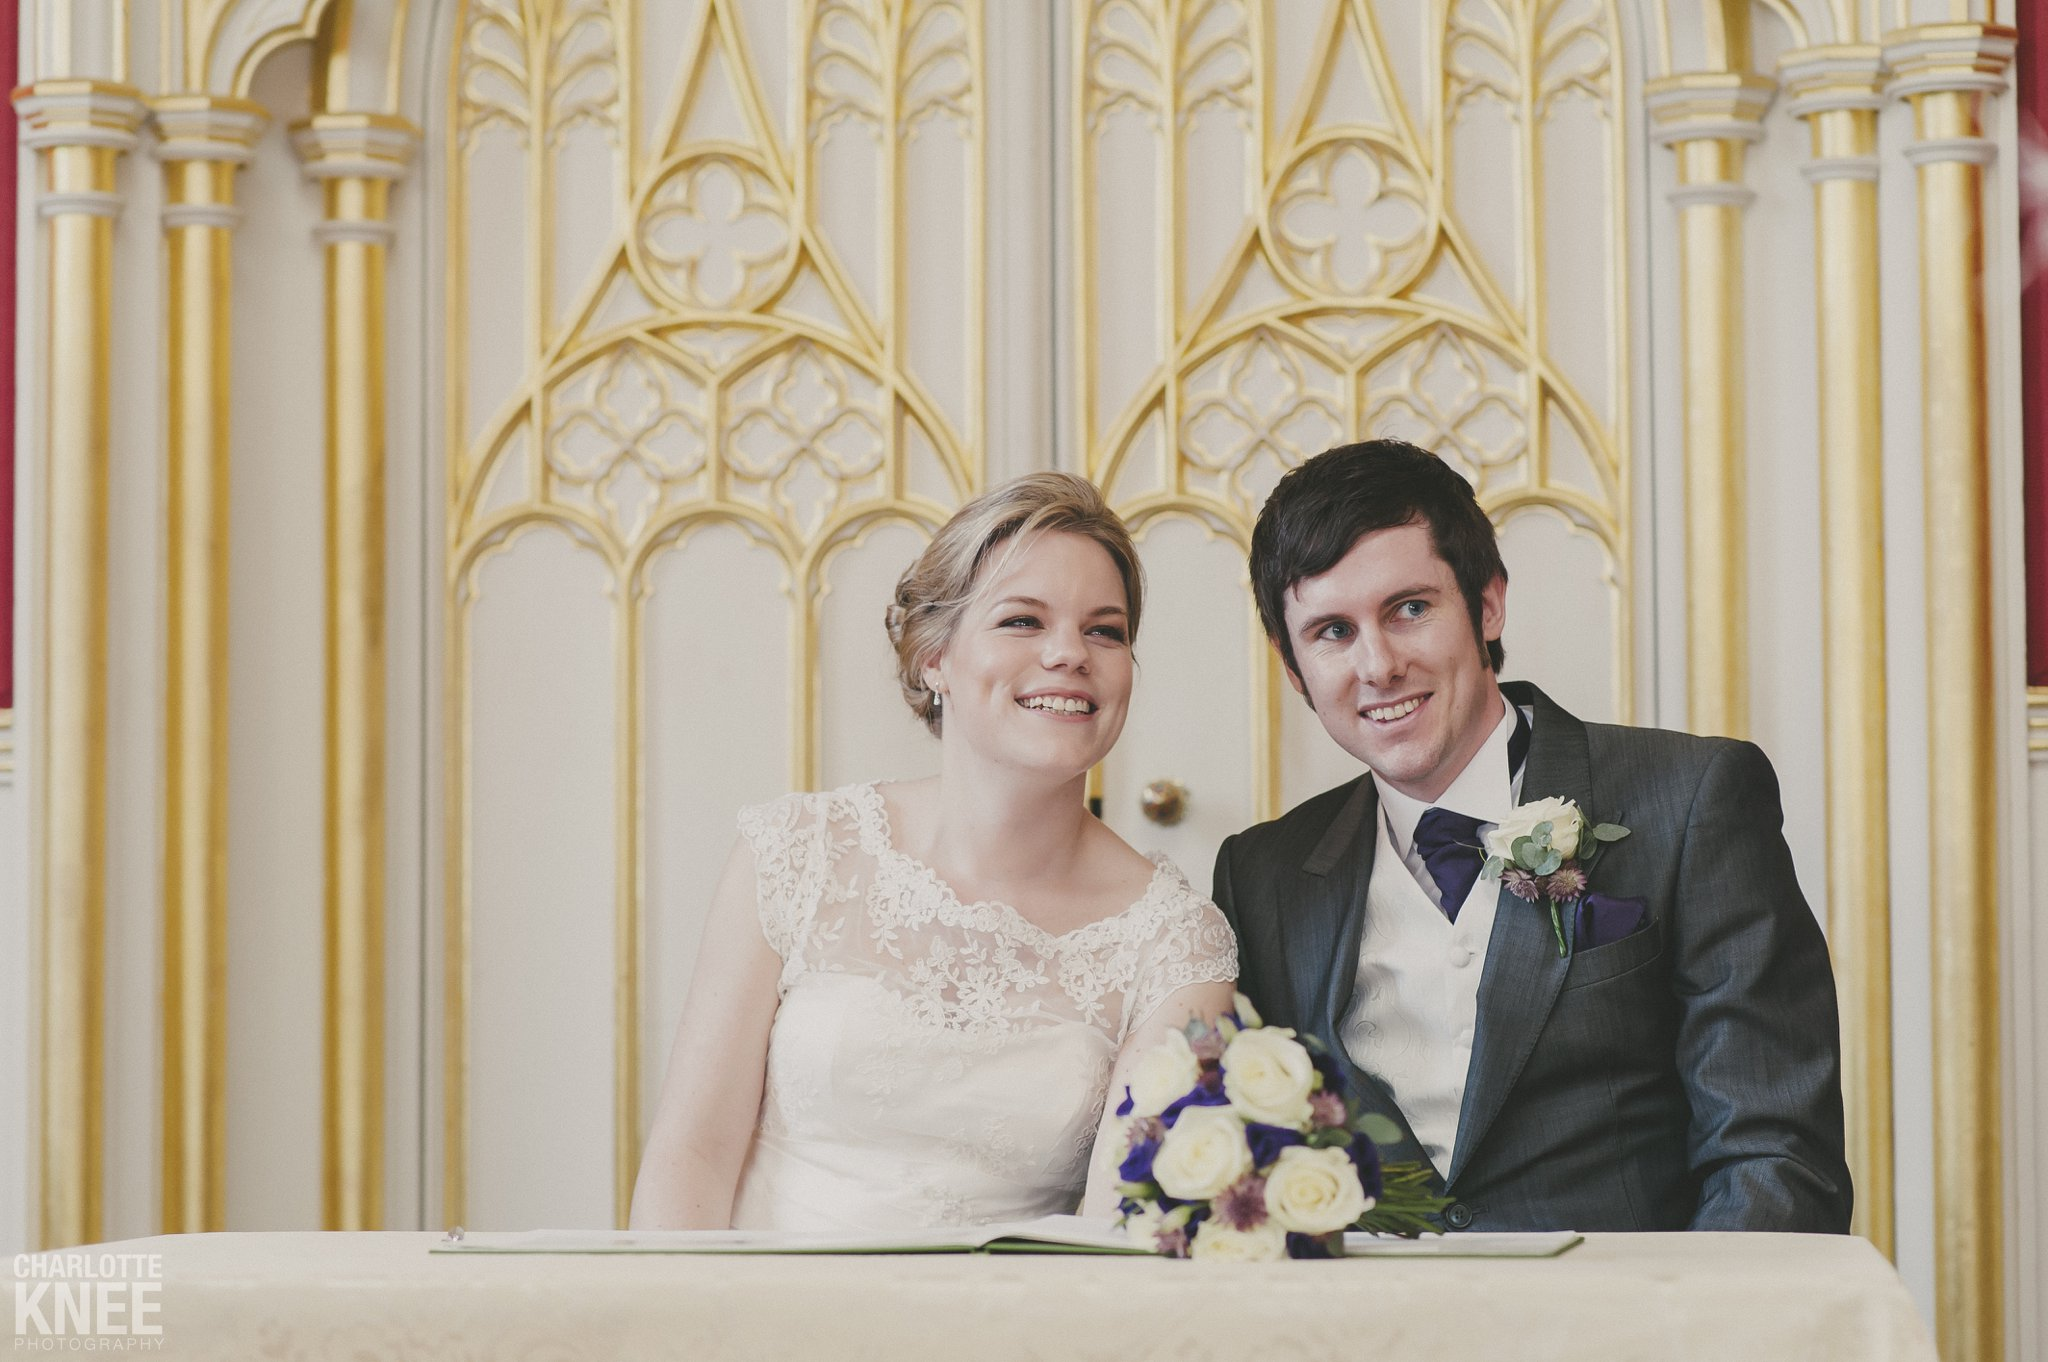 LONDON-WEDDING-PHOTOGRAPHY-STRAWBERRY-HILL-HOUSE-Charlotte-Knee-Photography_0041.jpg